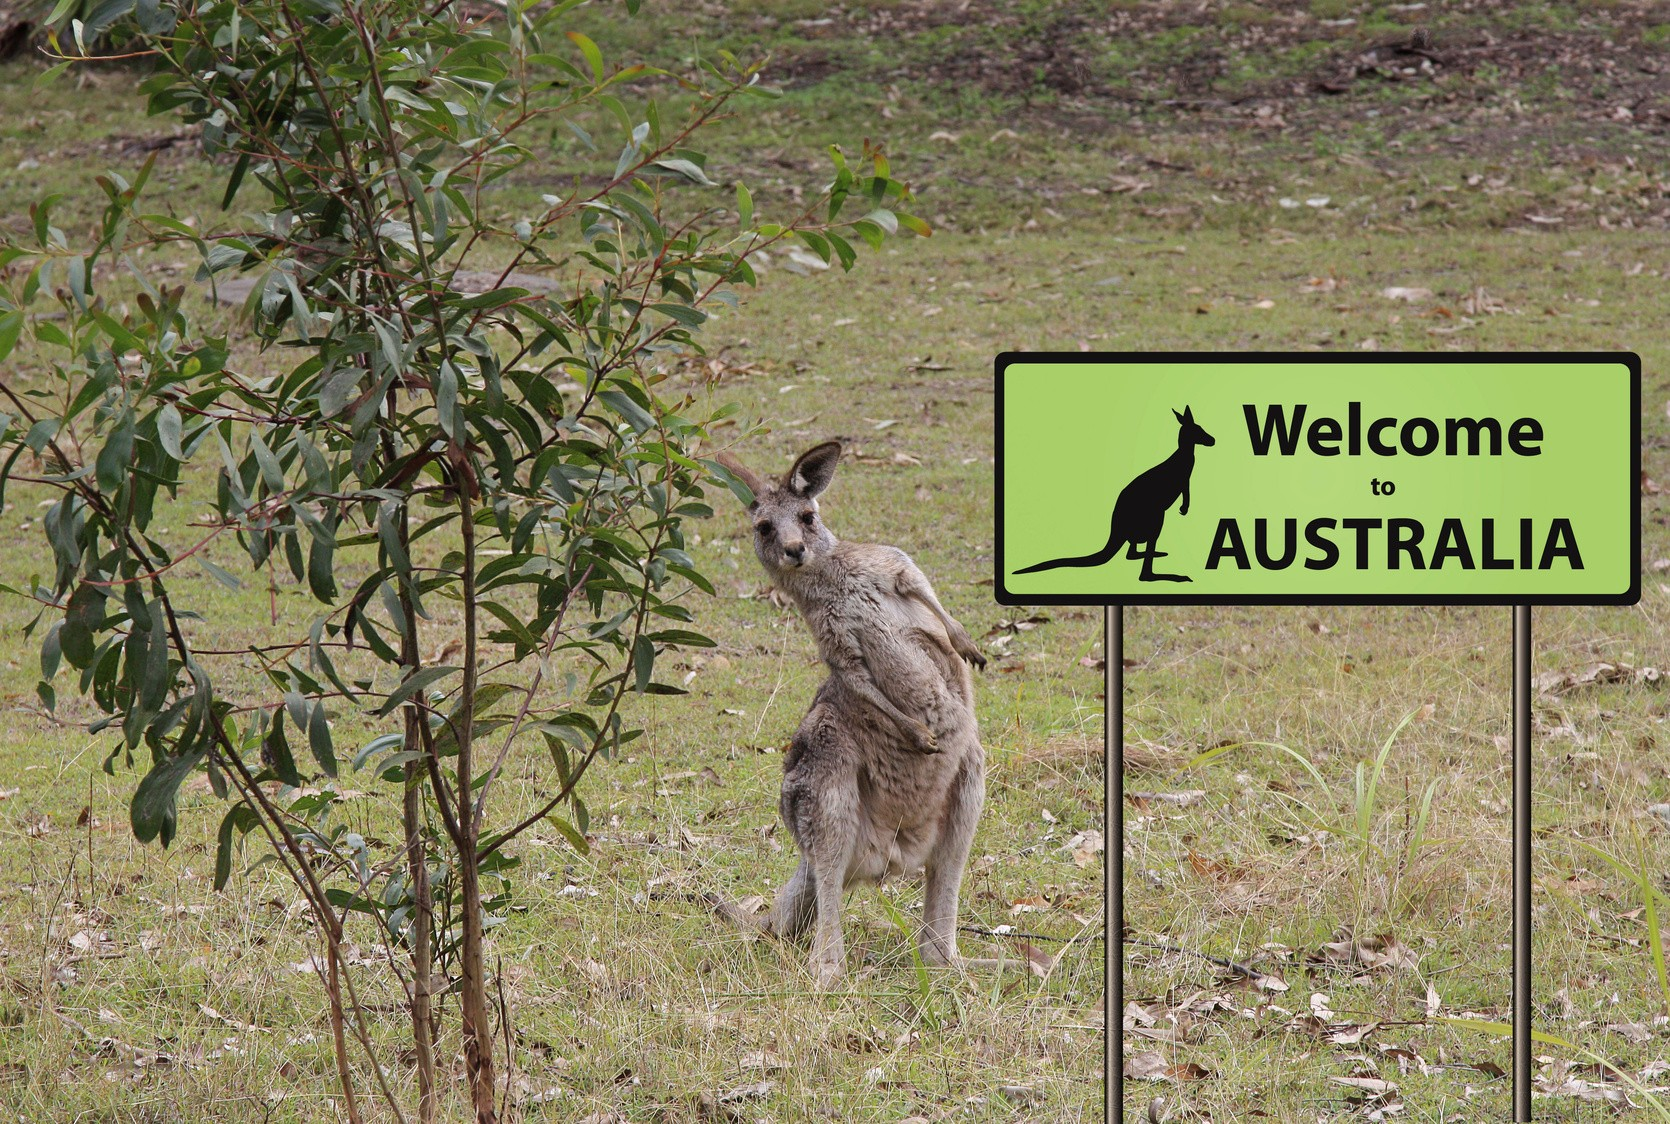 welcome to Australia sign with wild kangaroo